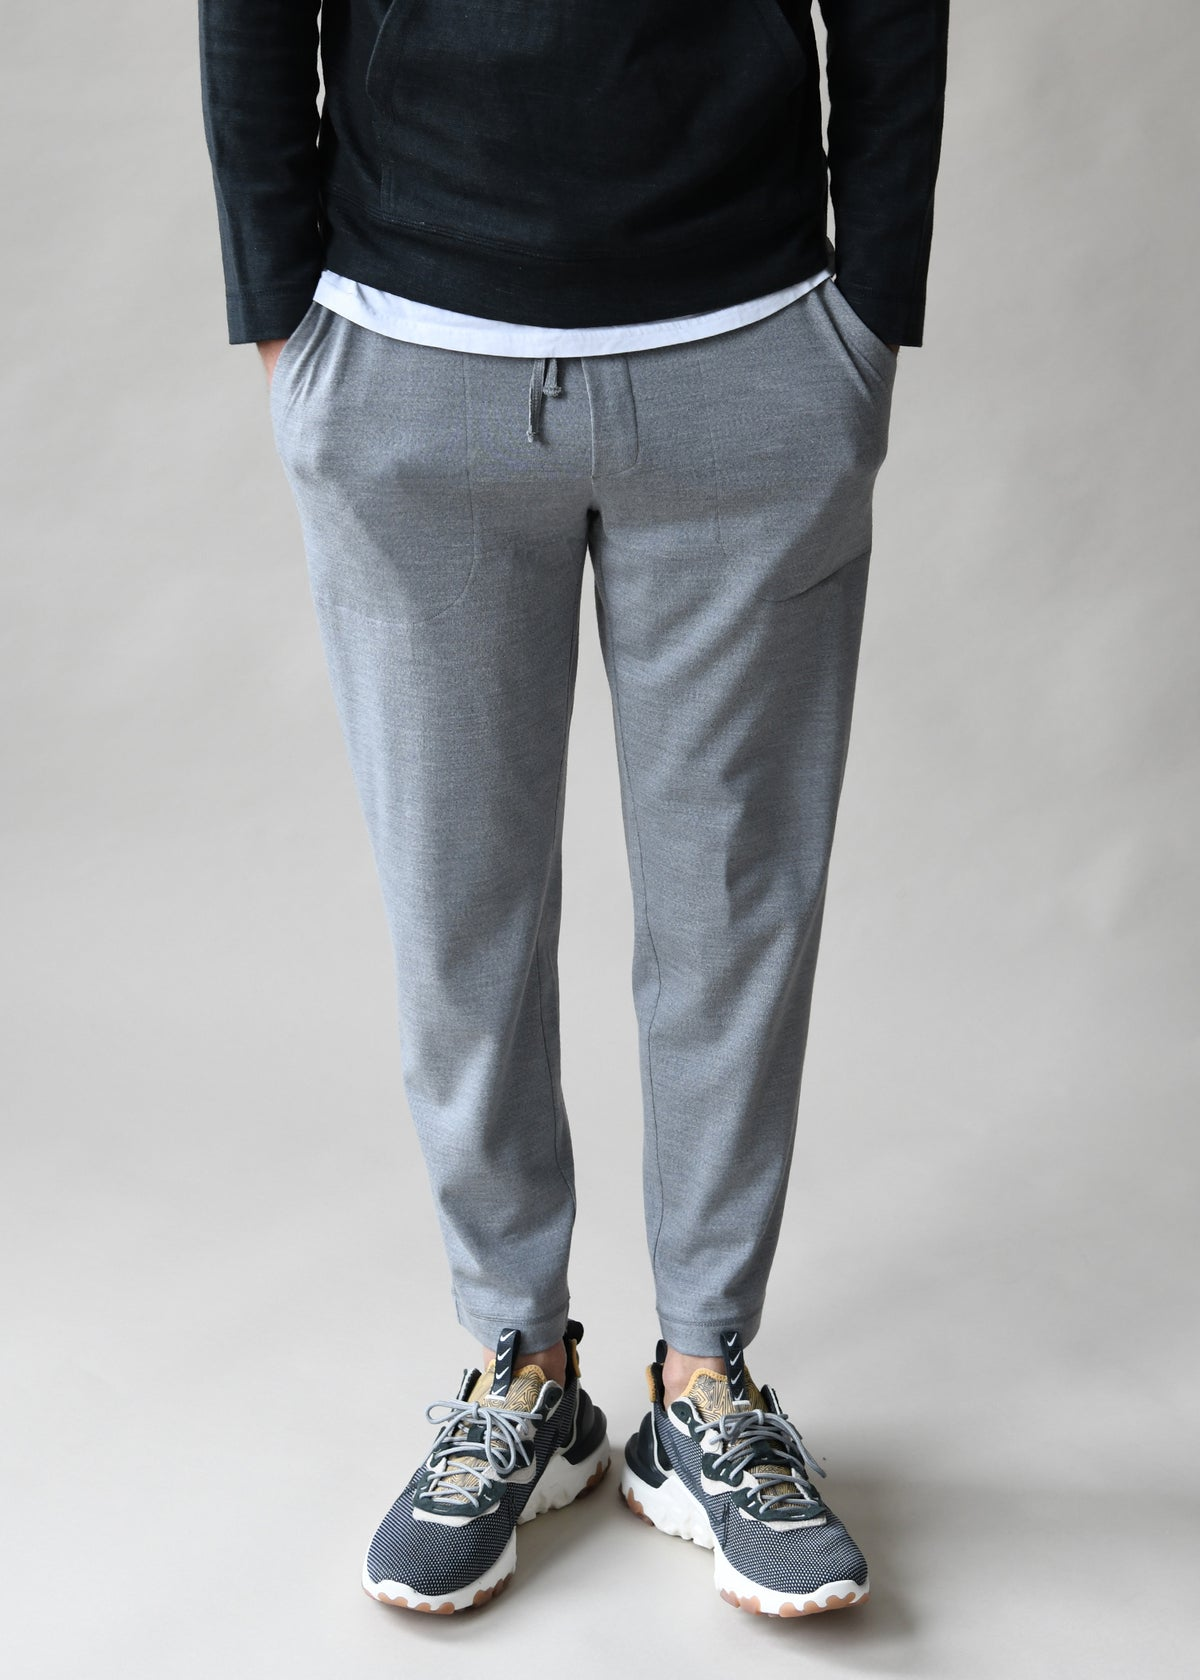 EXP010 - LIGHT TROUSER